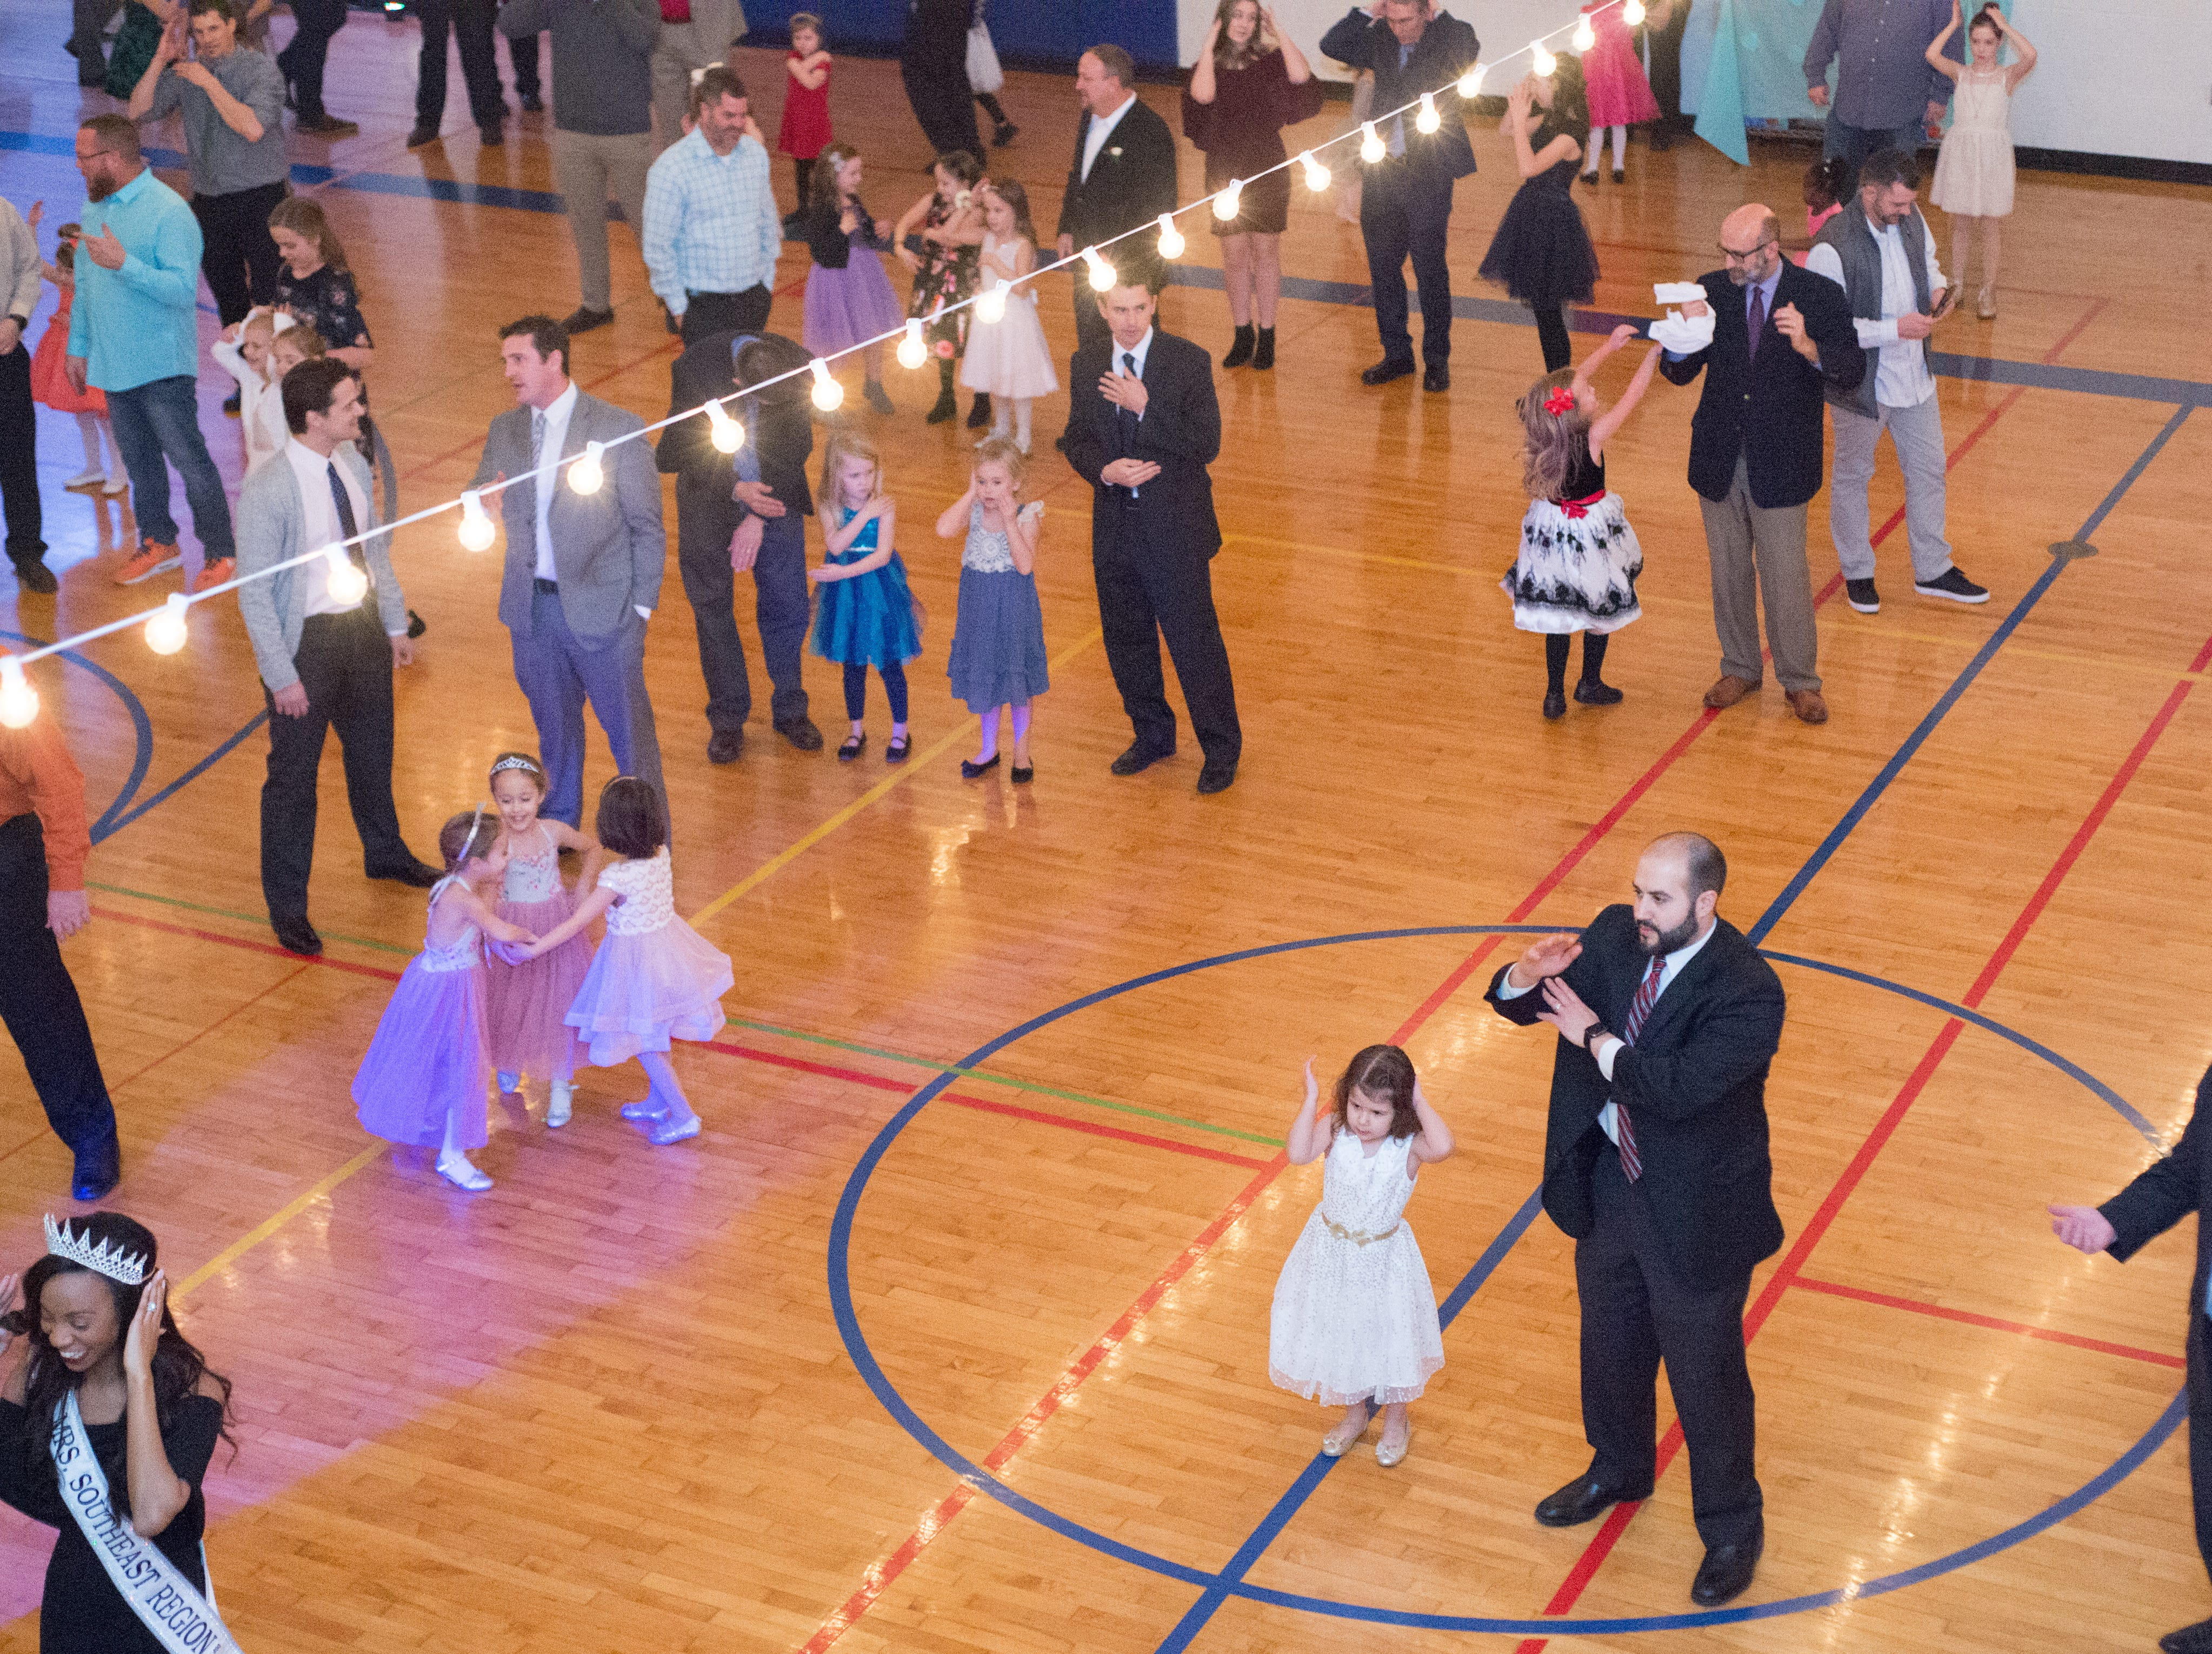 The Daddy Daughter Dance drew a large crowd to Long Community Center on Saturday, Feb. 2, 2019.